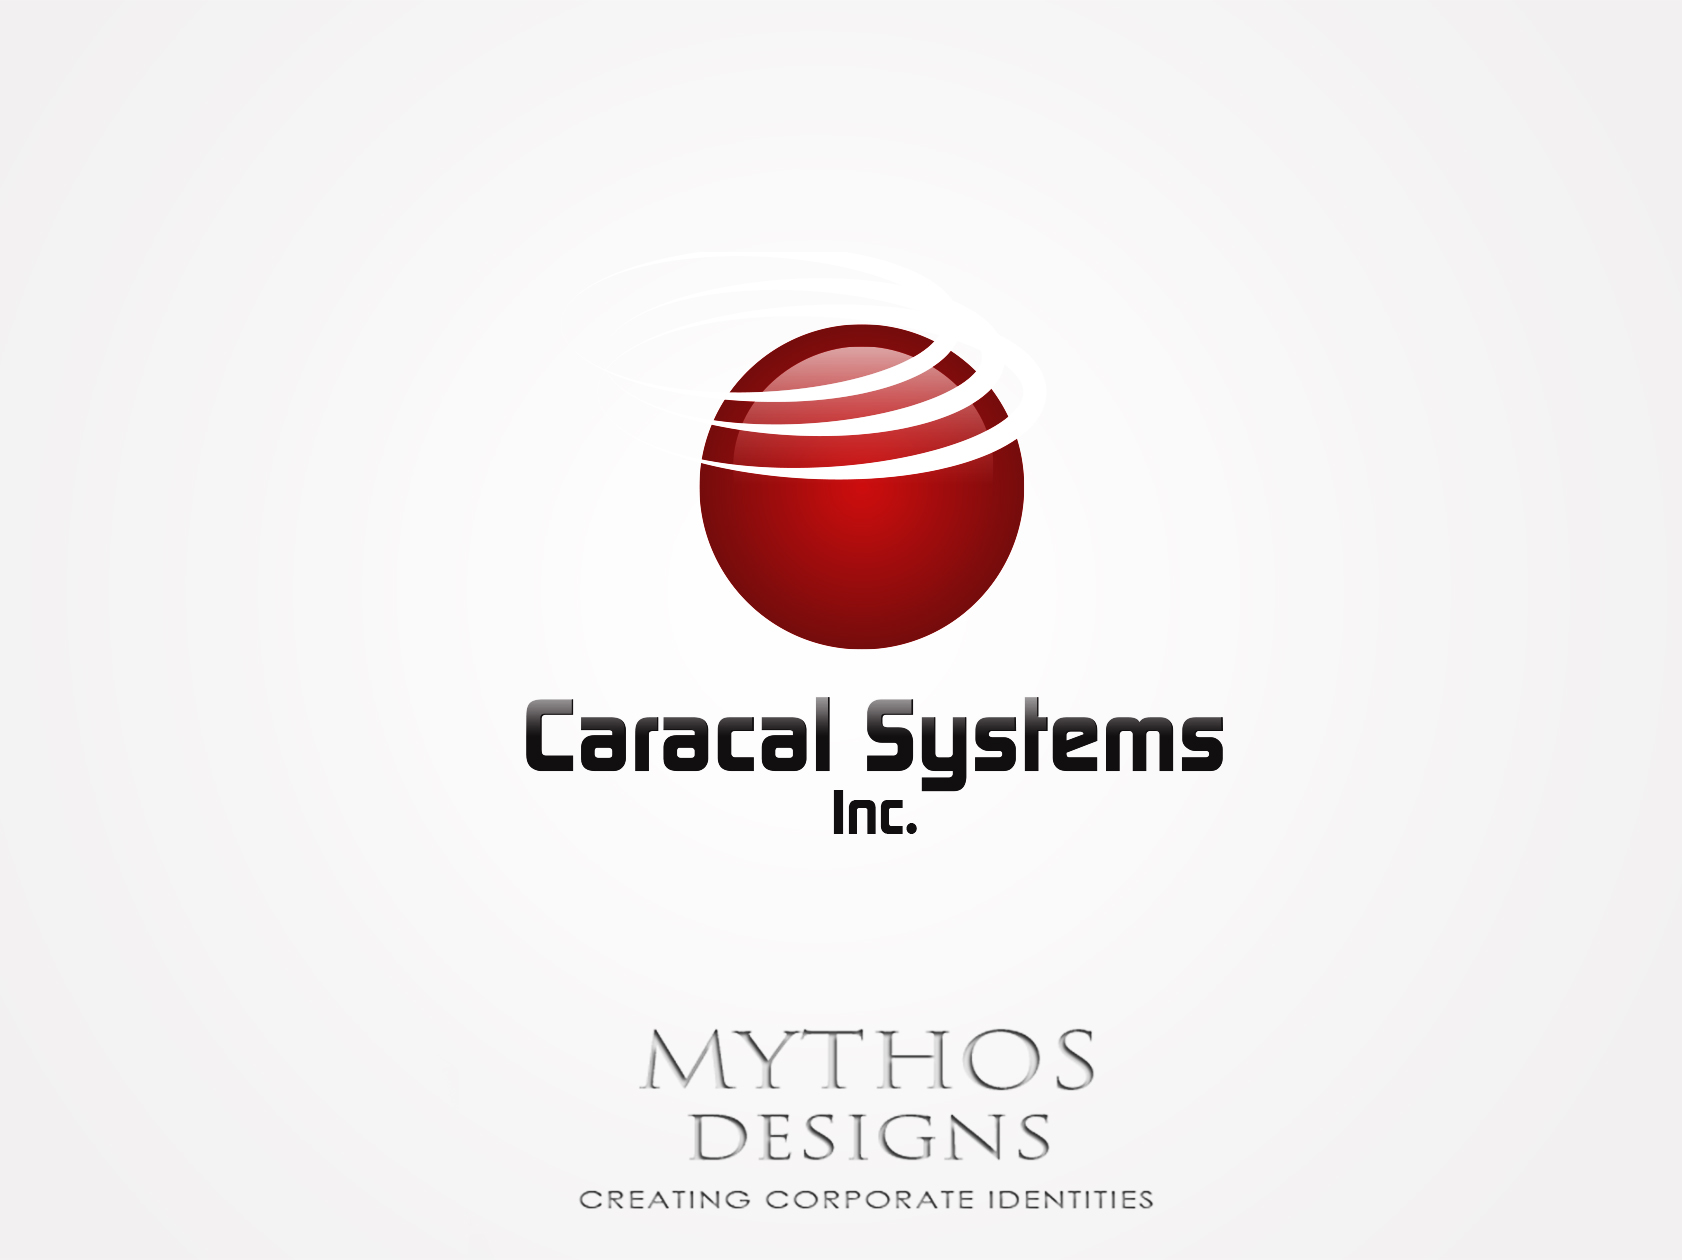 Logo Design by Mythos Designs - Entry No. 108 in the Logo Design Contest Inspiring Logo Design for Caracal Systems Inc..